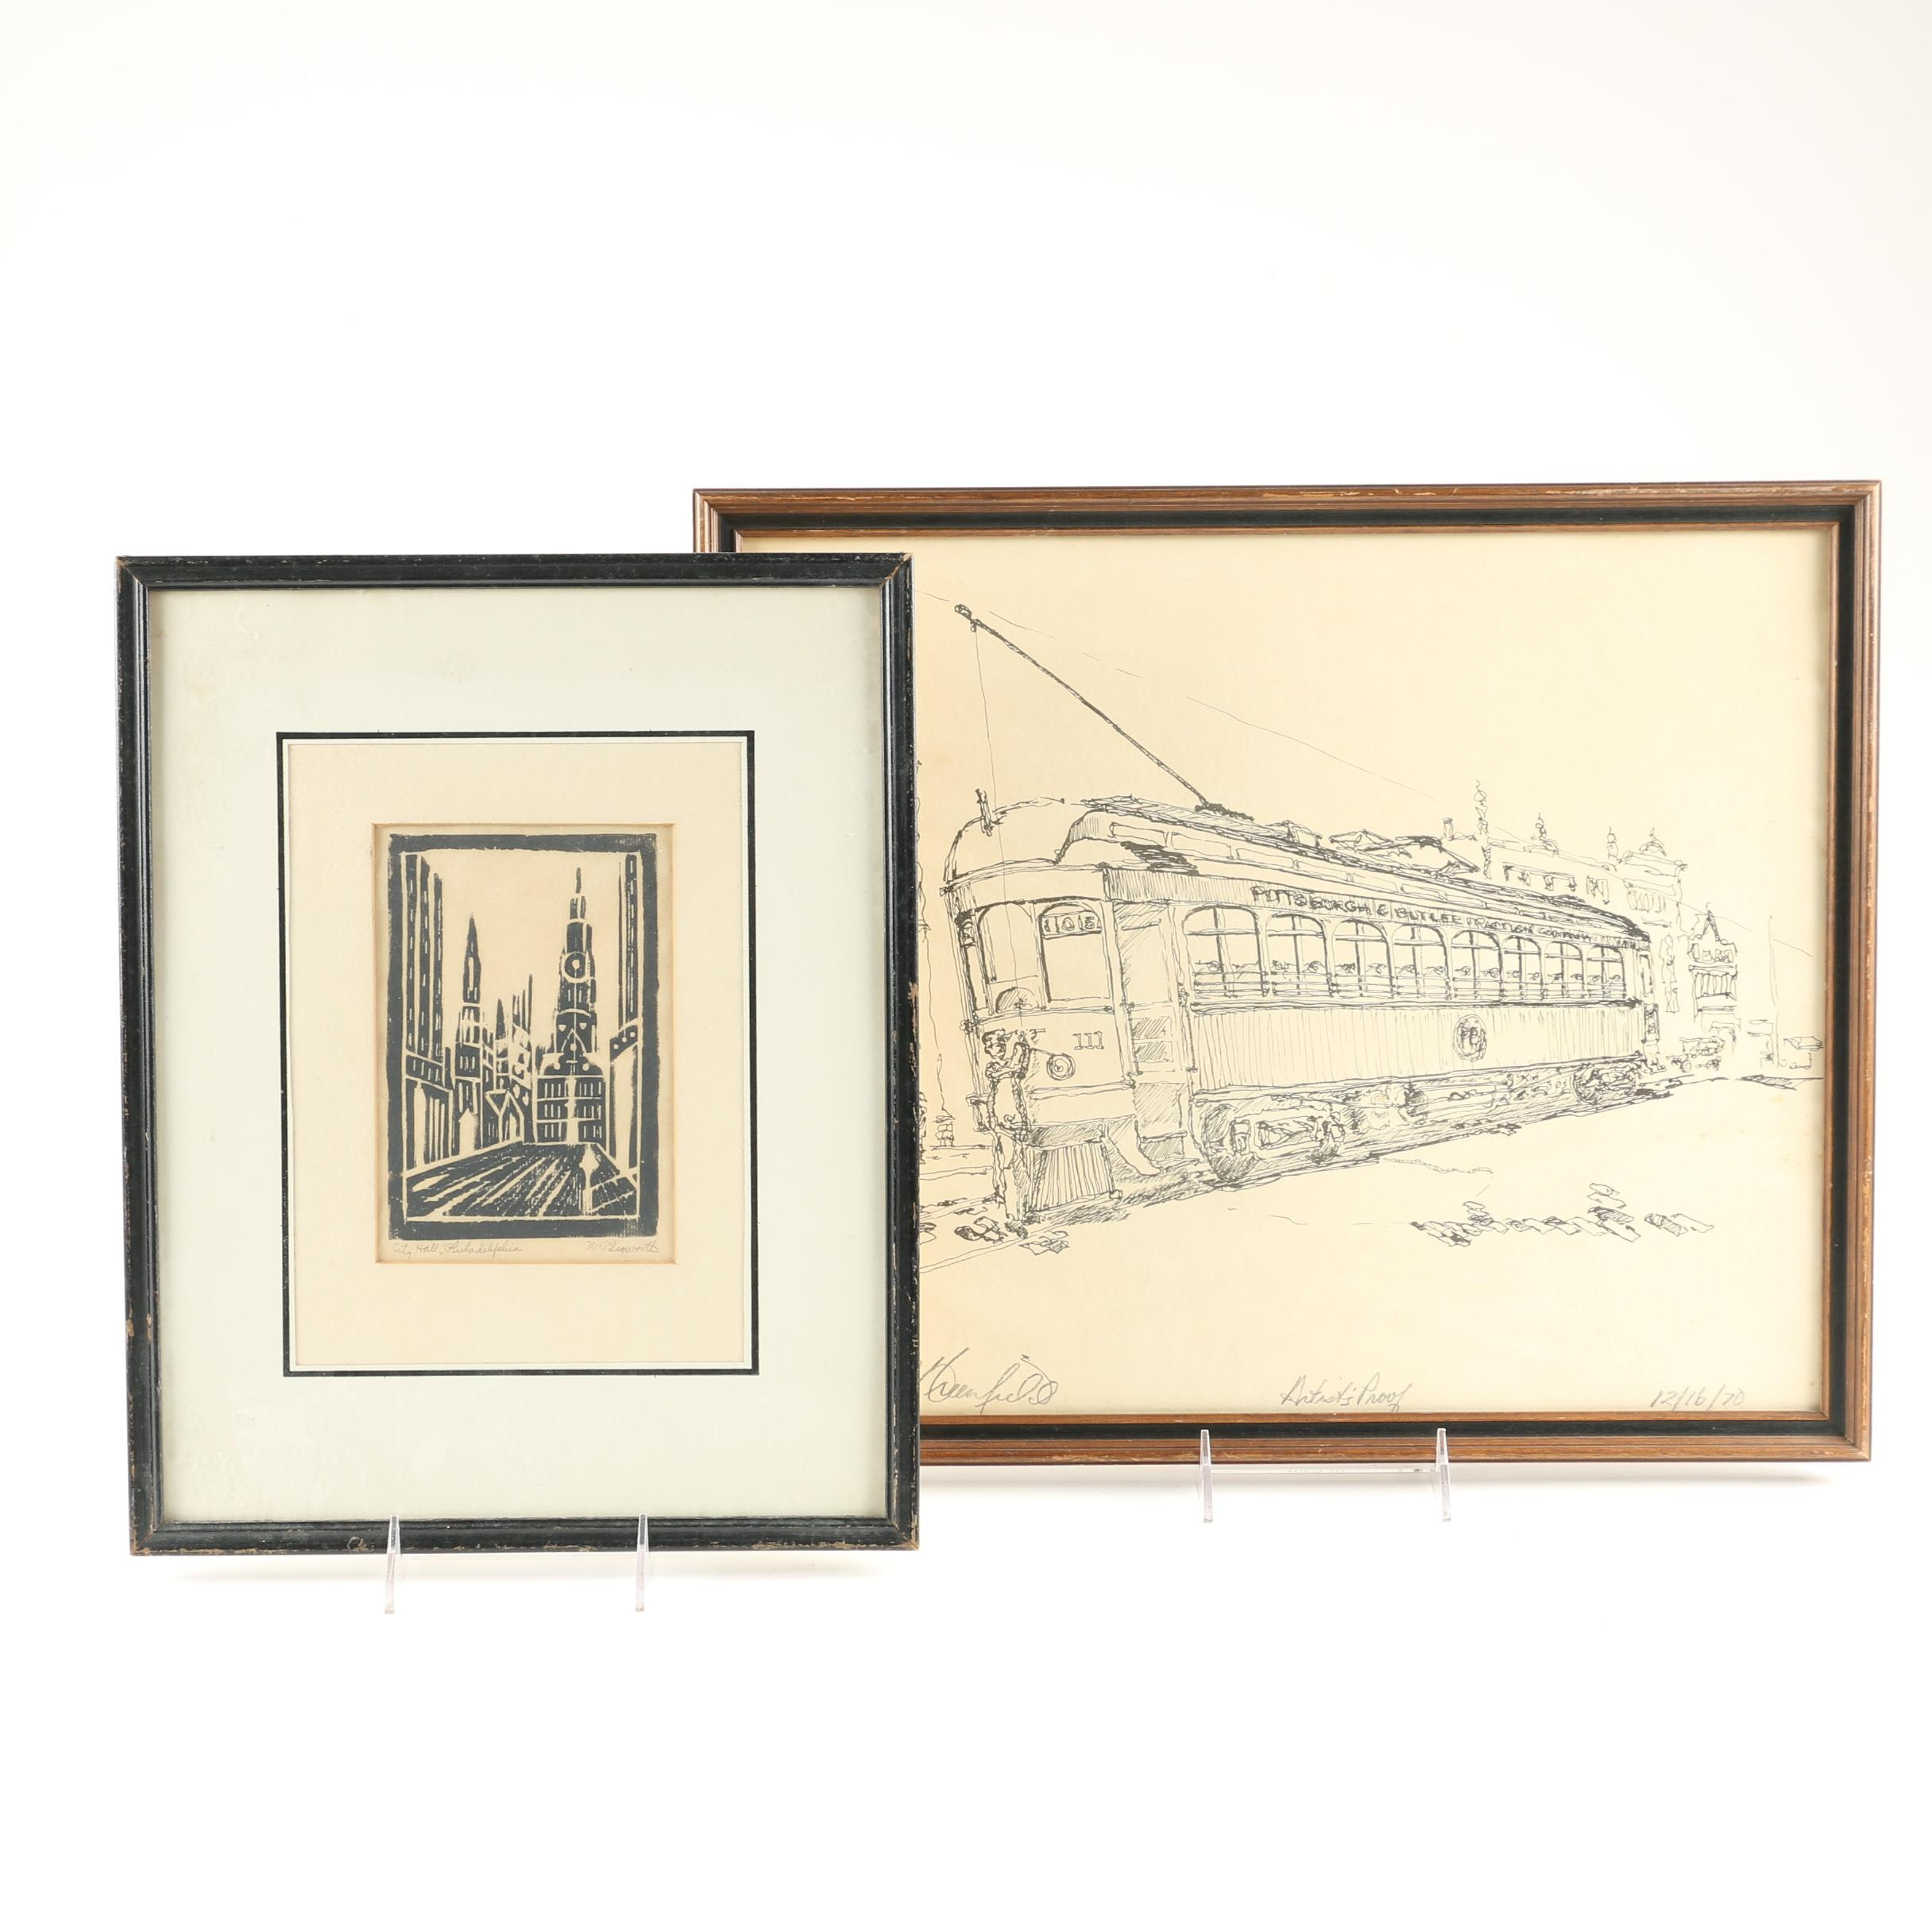 M.P. Sigworth and M.R. Greenfield City Scenes